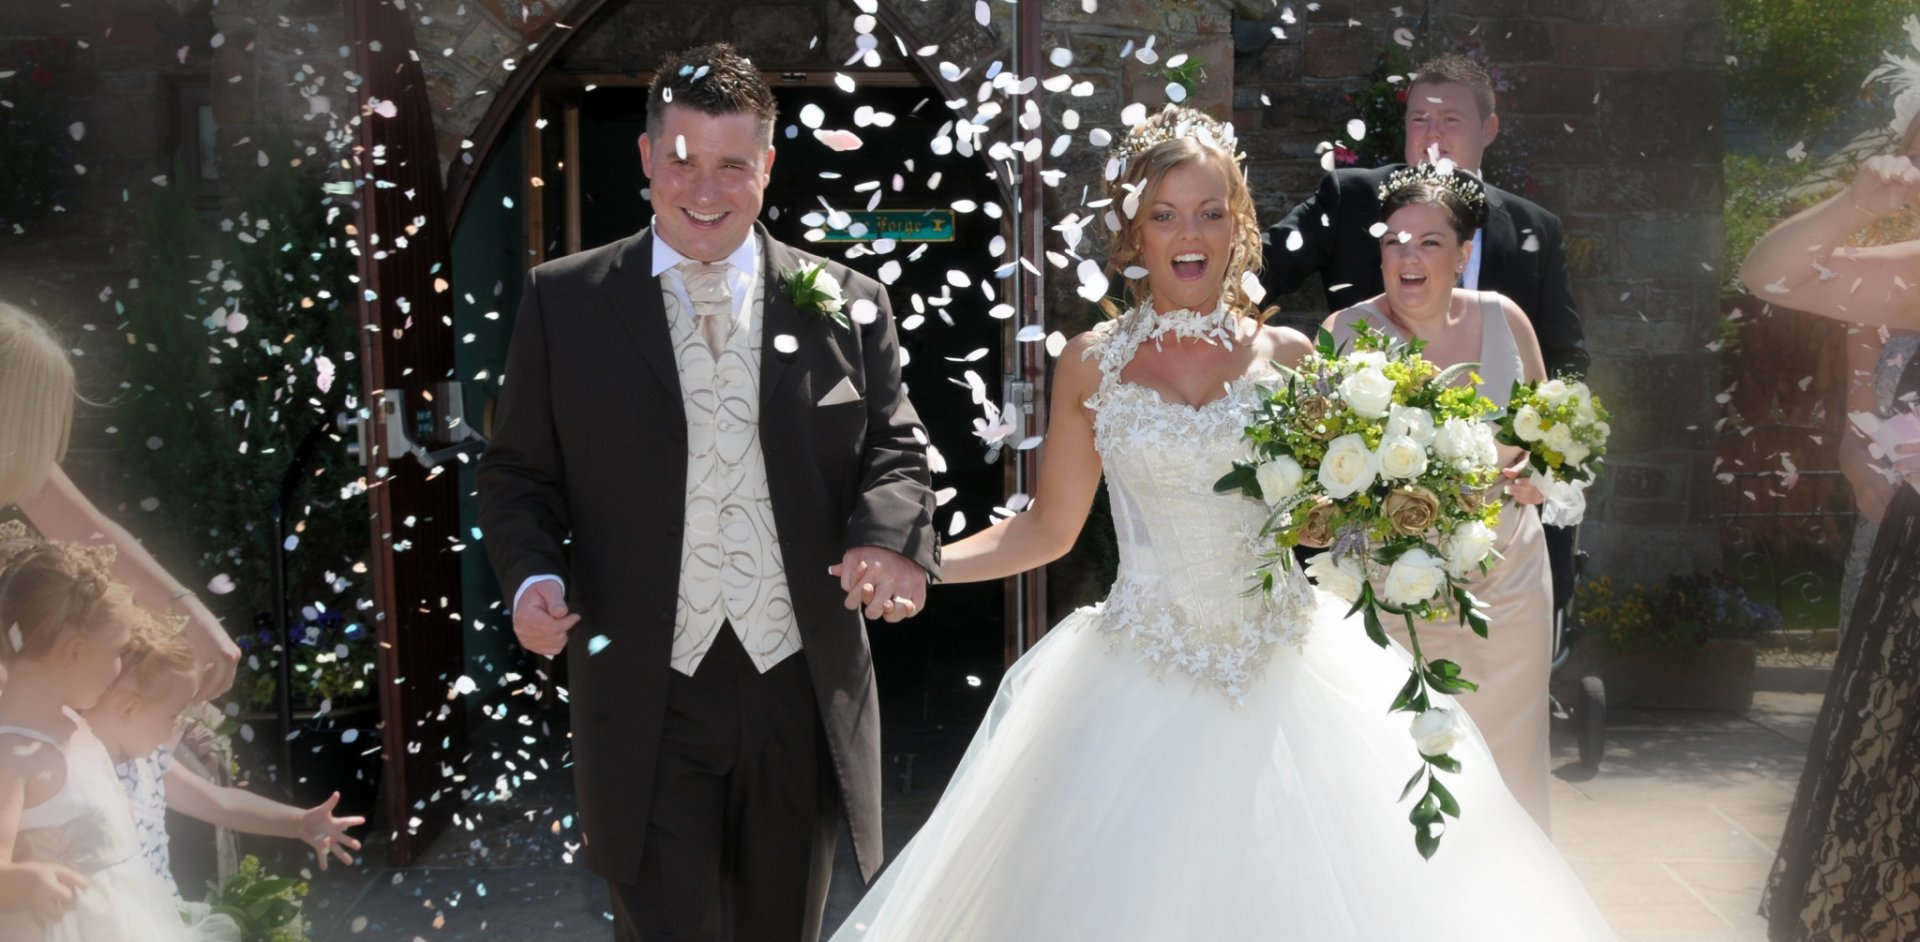 Wedding Venues for Yorkshire Brides - The Mill Forge Hotel near Gretna Green